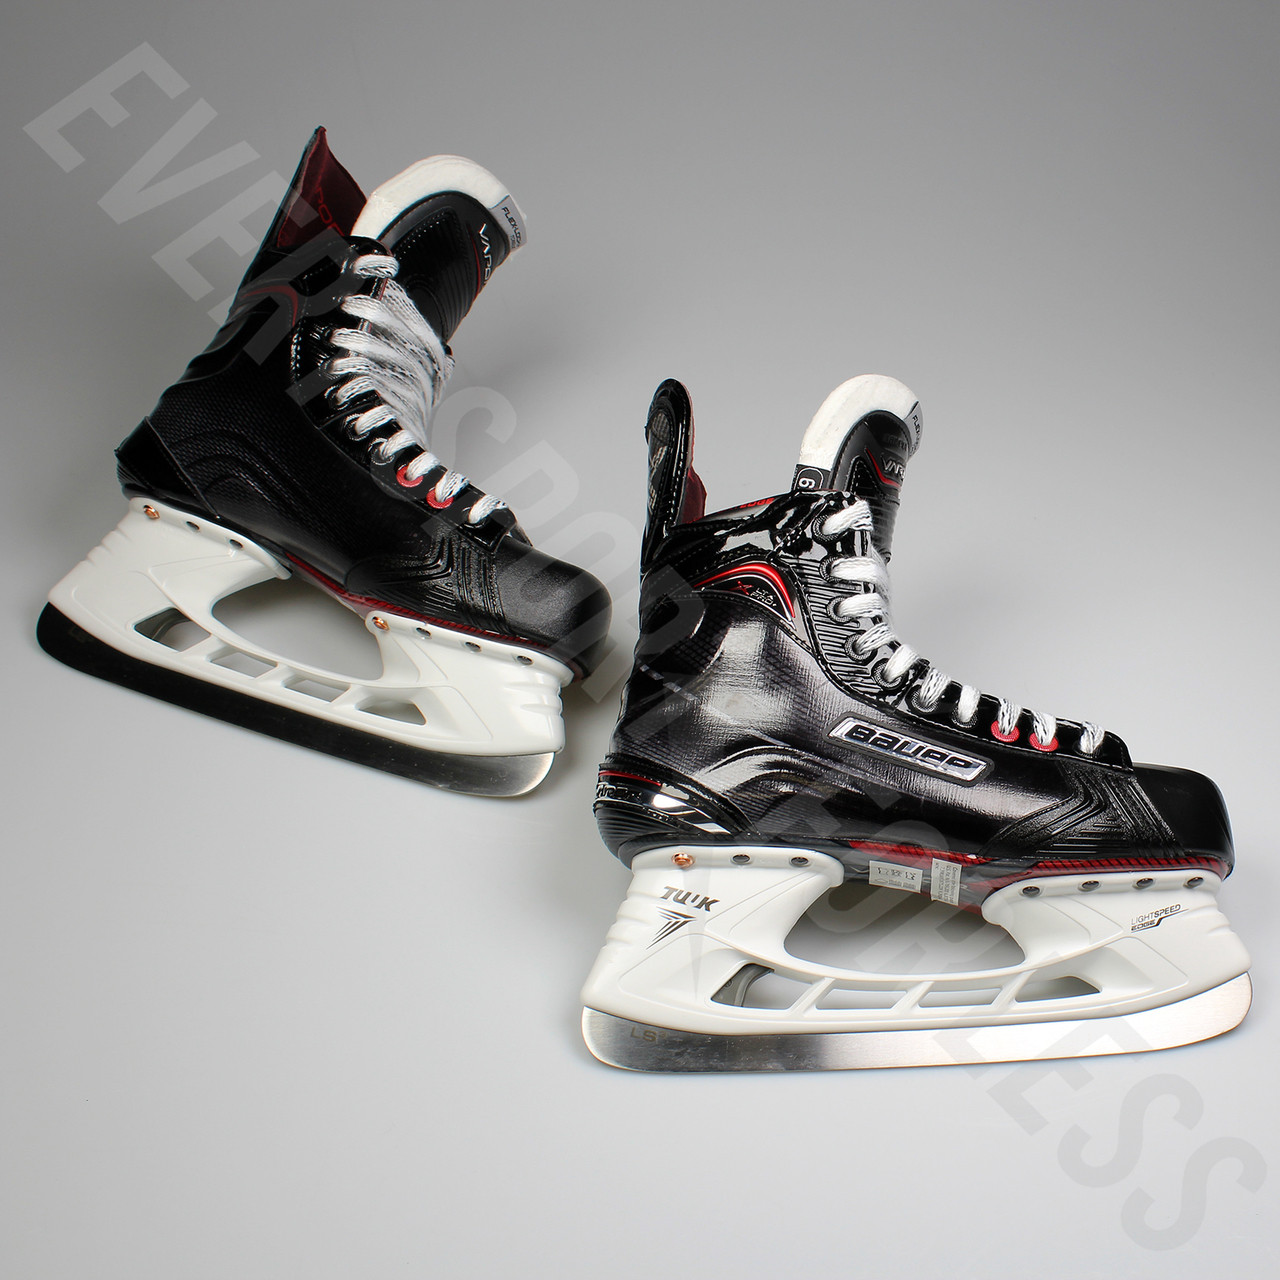 Bauer Vapor X LTX Pro+ Senior Hockey Skates - SPECIAL MAKE UP